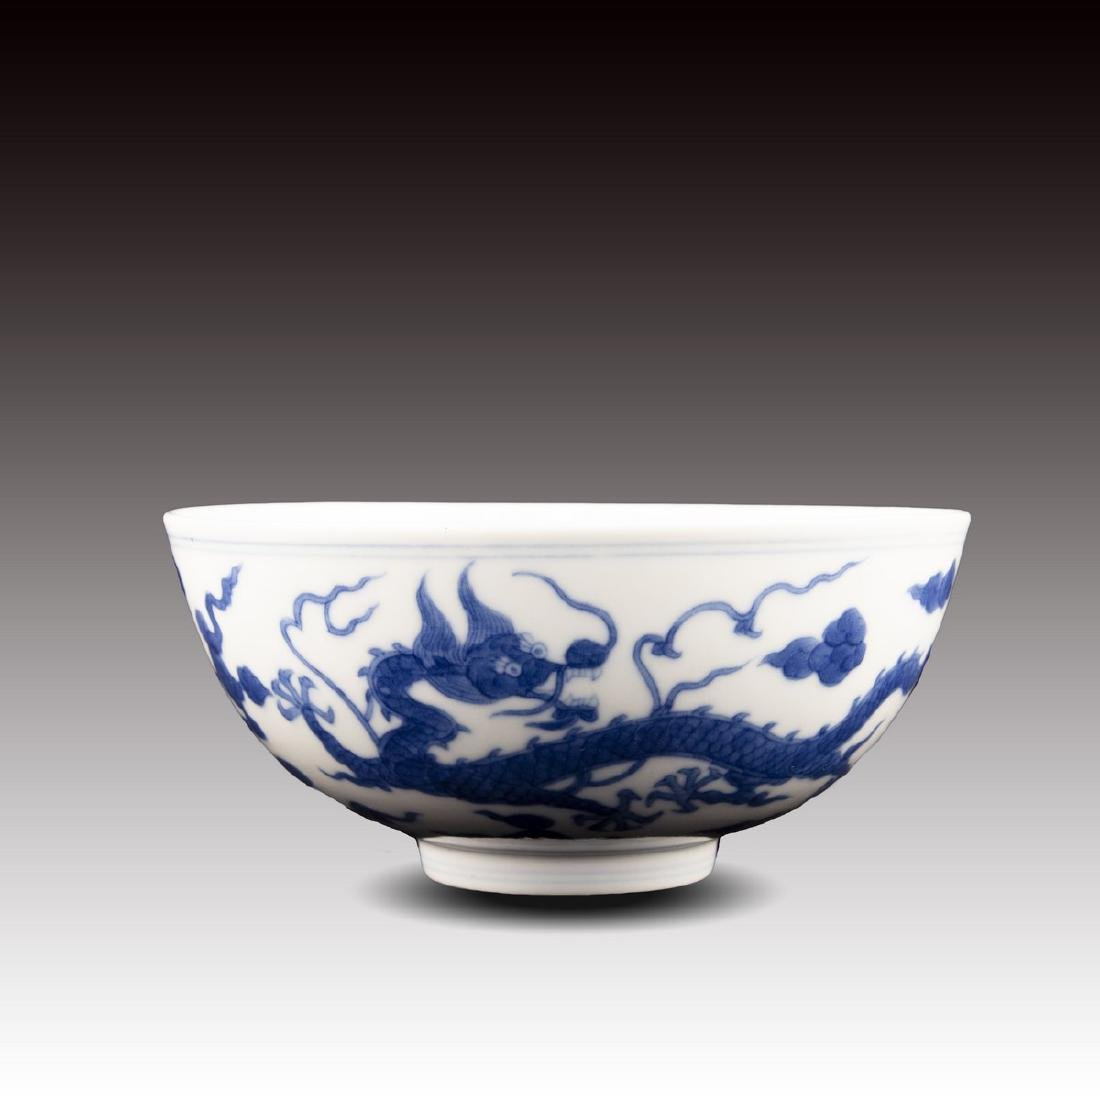 A CHINESE BLUE & WHITE DRAGON BOWL, DAOGUANG PERIOD